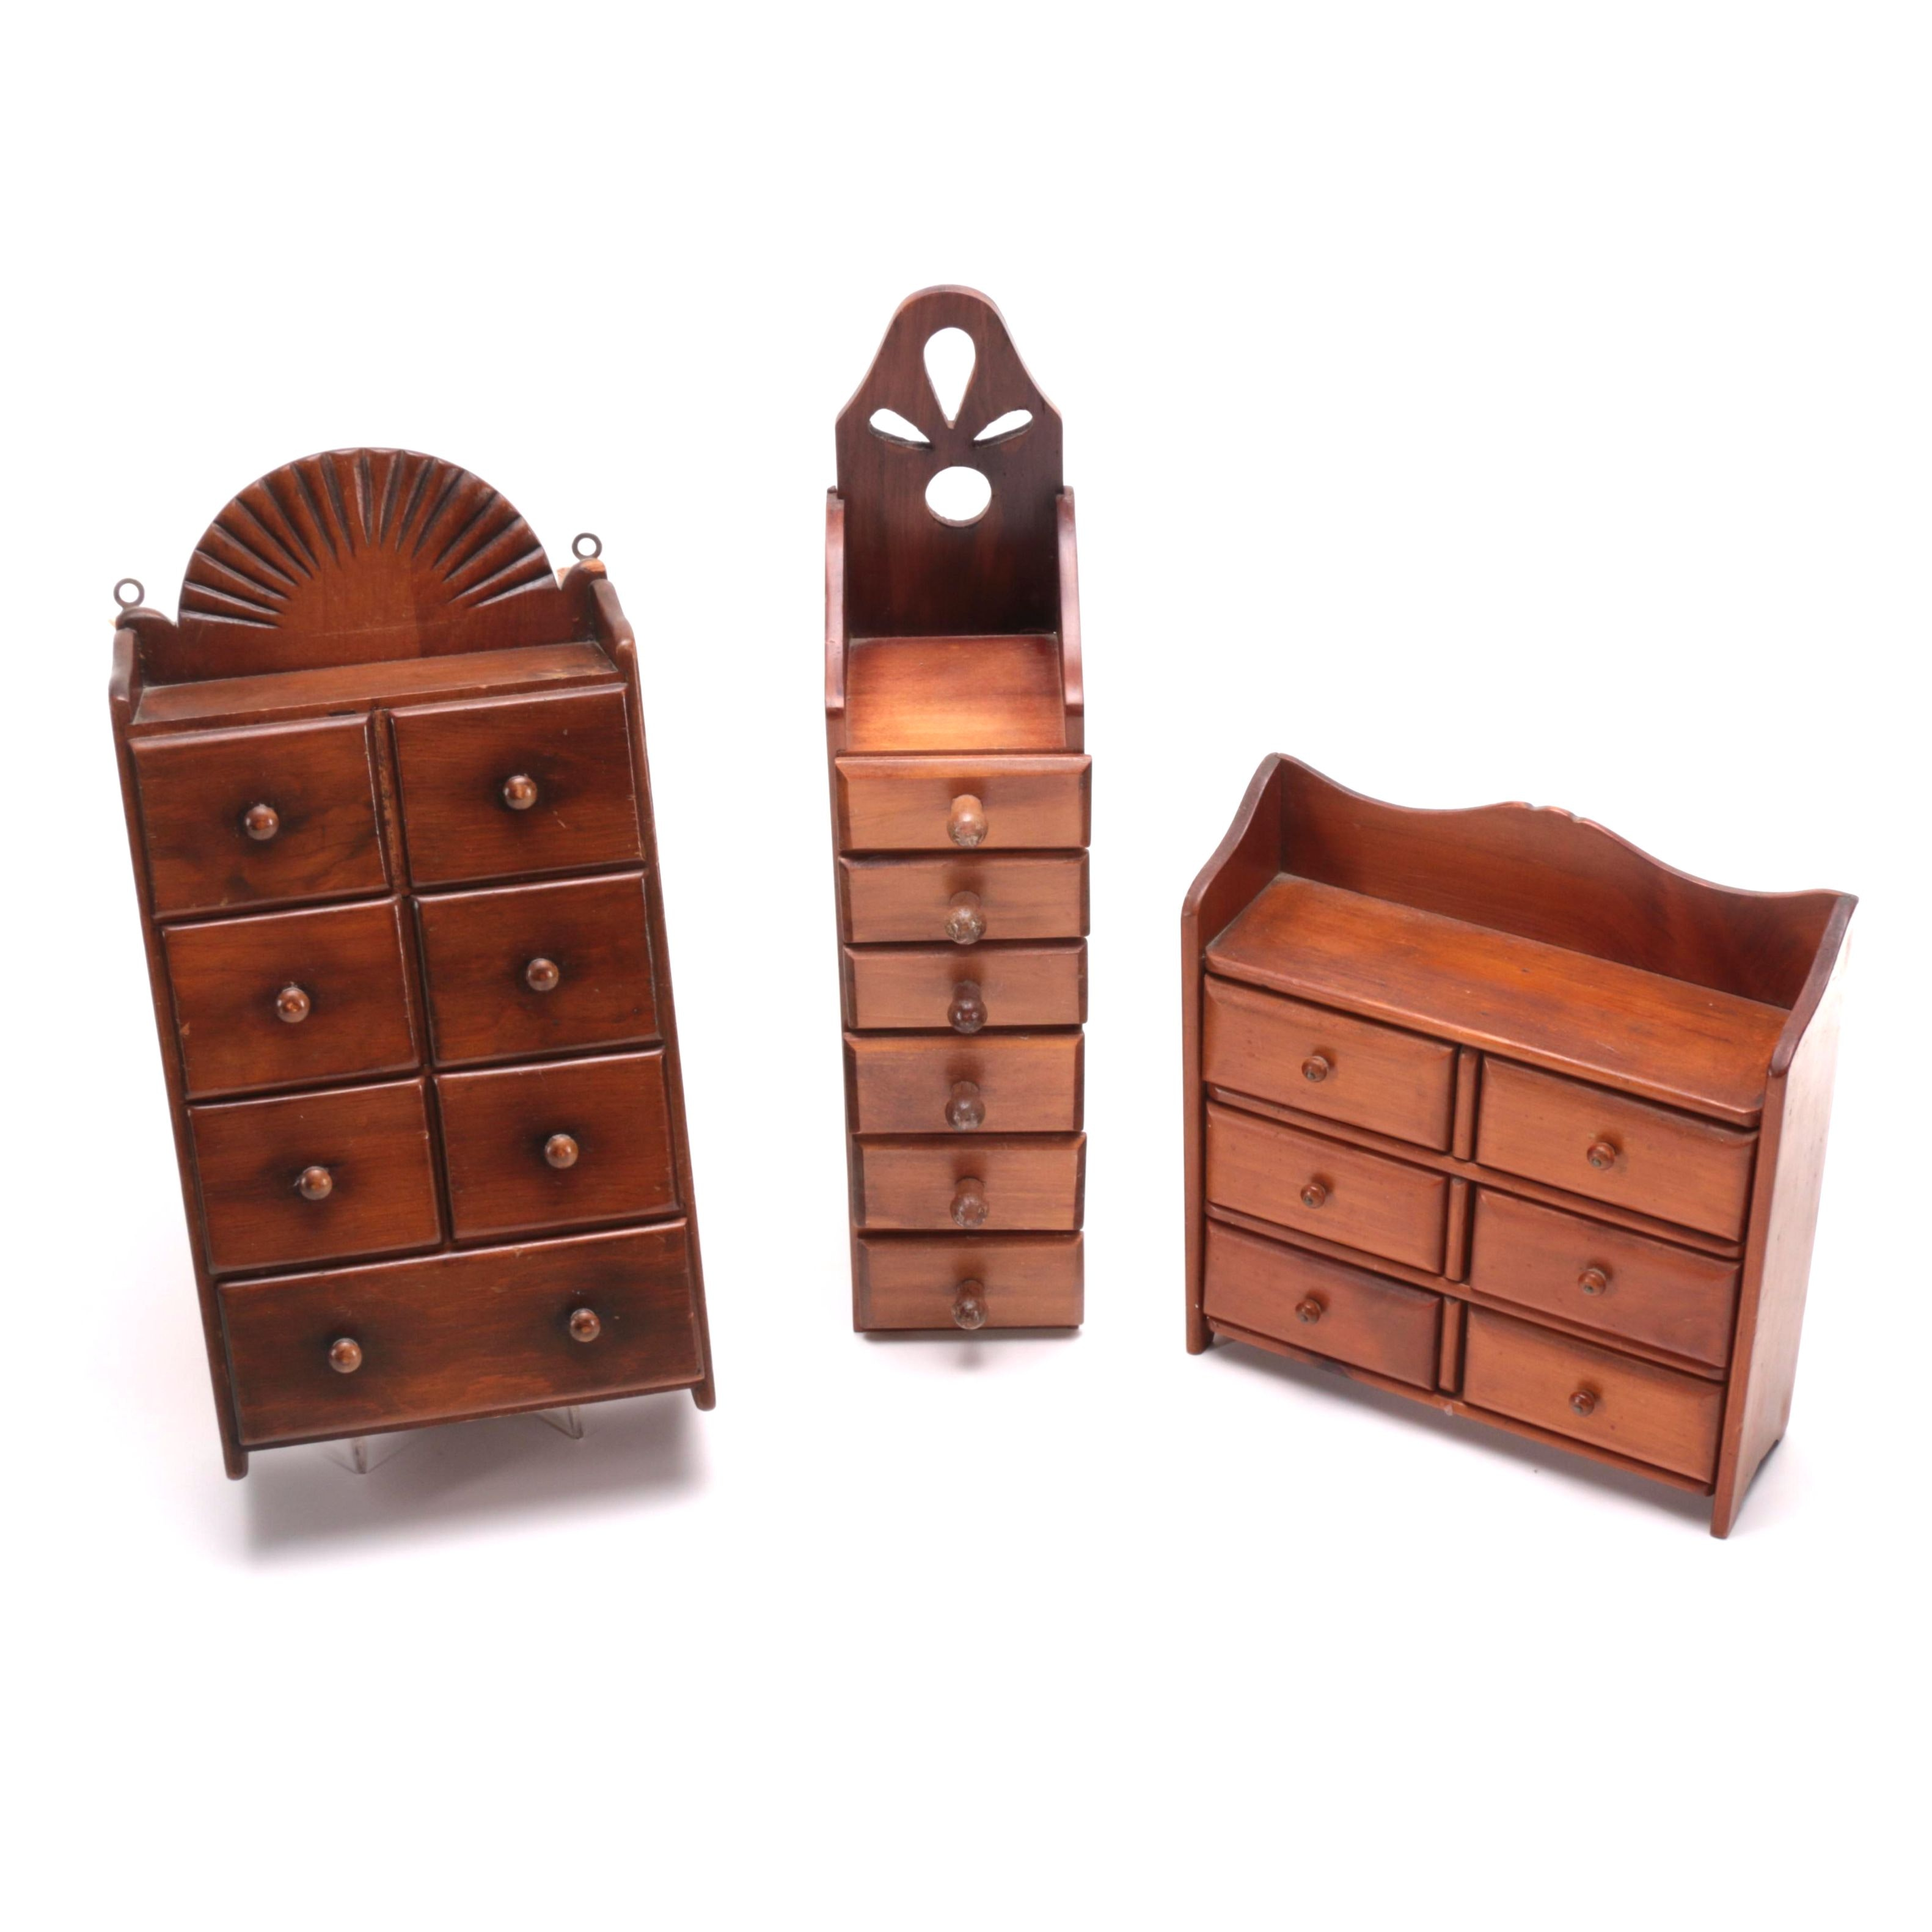 Wooden Spice Containers